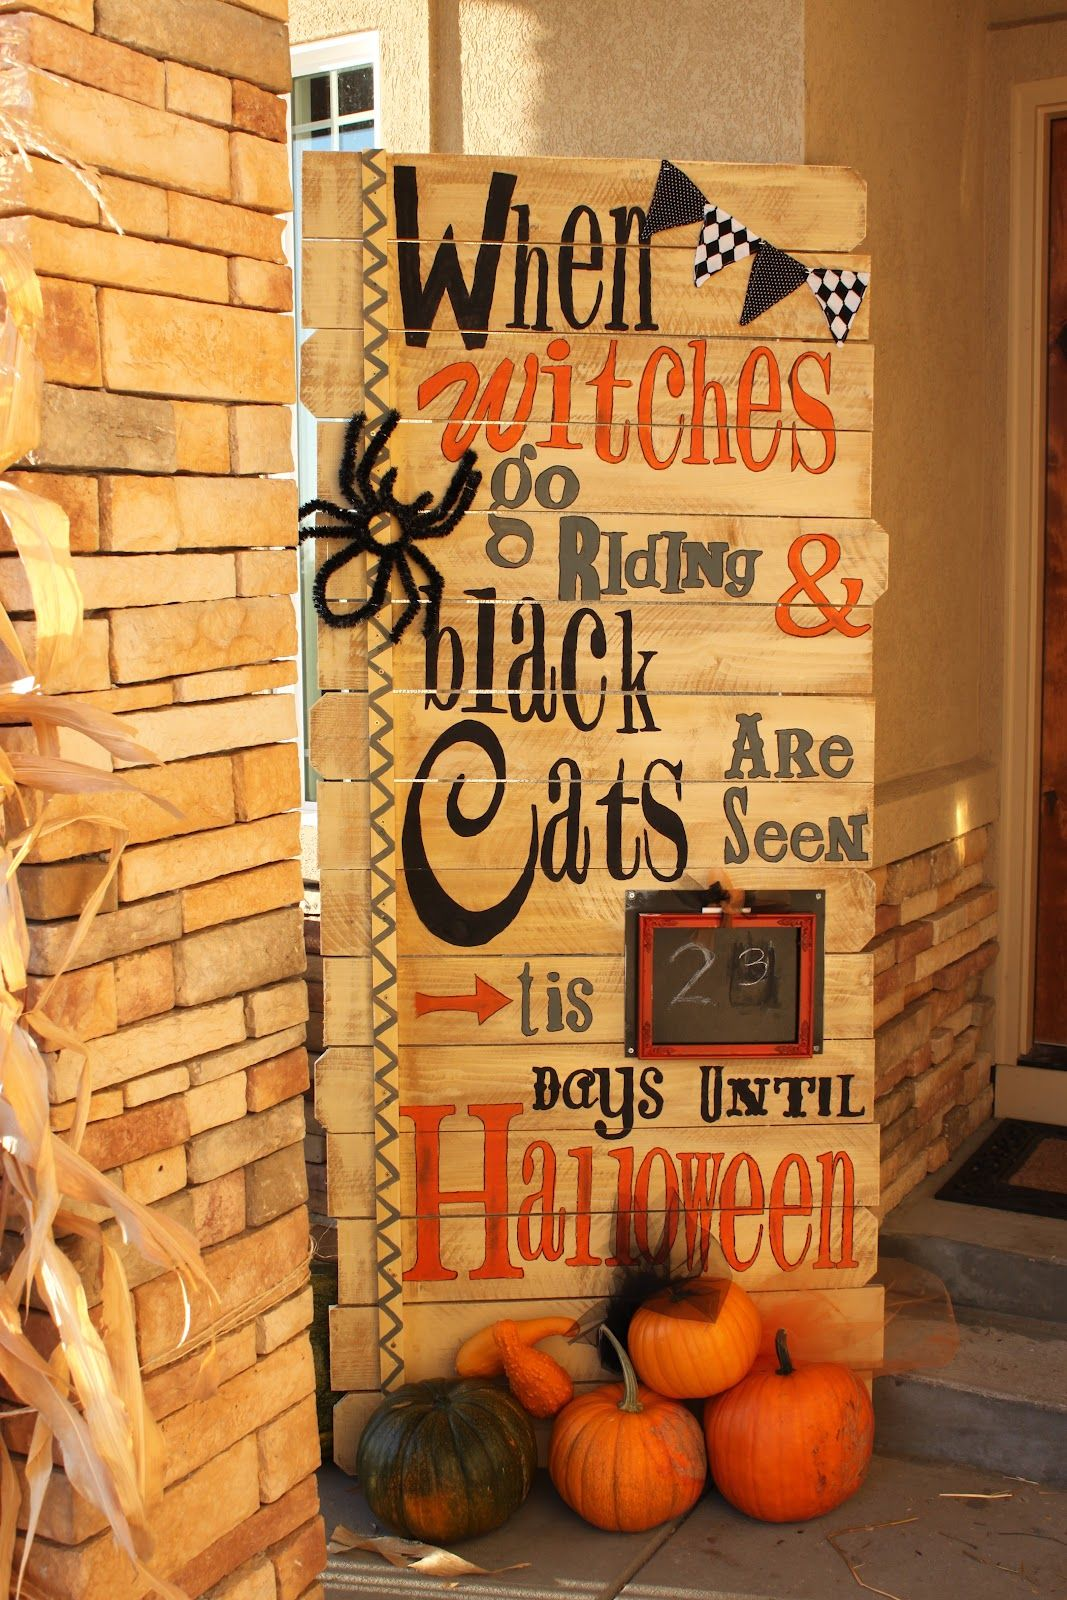 IMG_0486jpg 1,067×1,600 pixels Halloween Pinterest Black cats - Front Door Halloween Decoration Ideas